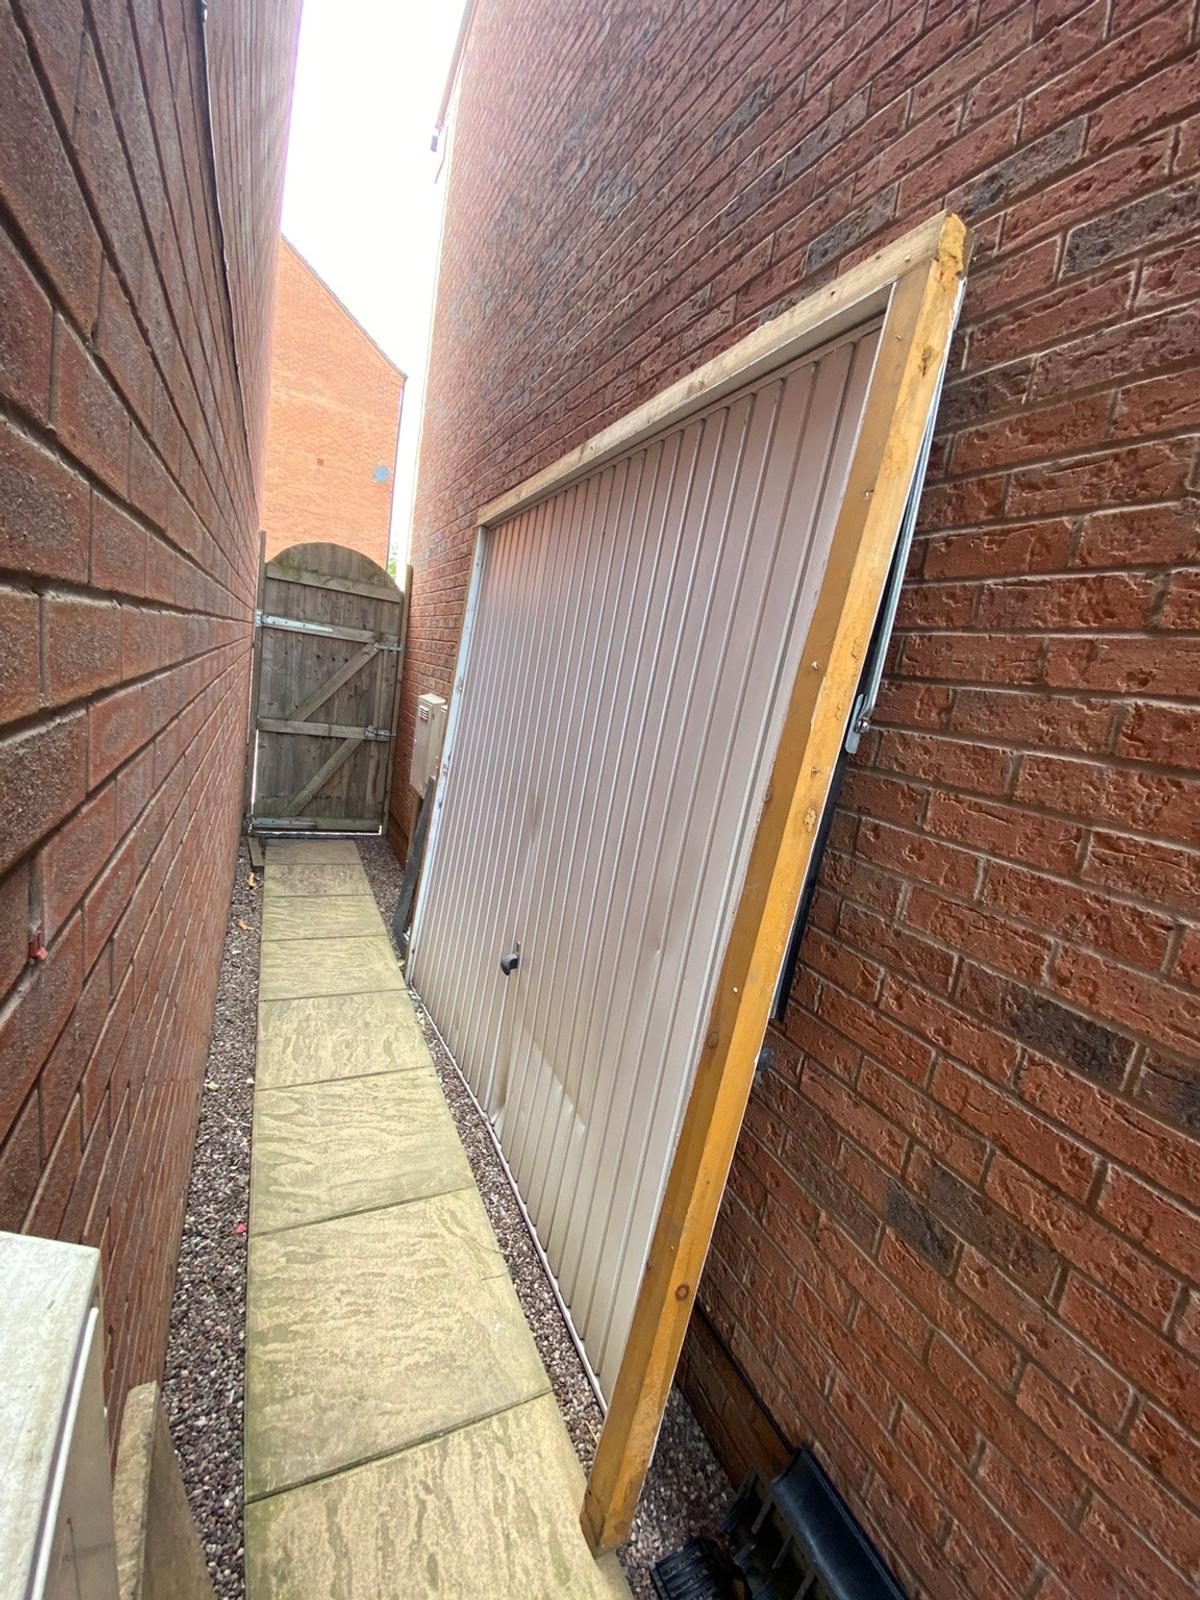 Garage door removed from conversion.  Has some small dents which can be rectified if you know how. Includes wooden frame.  Dimensions Actual door 7ft x 7ft With frame W228cm H221cm  Sold as Seen. Collection only. Cash/Bank transfer on collection.  Located in Walsall WS2